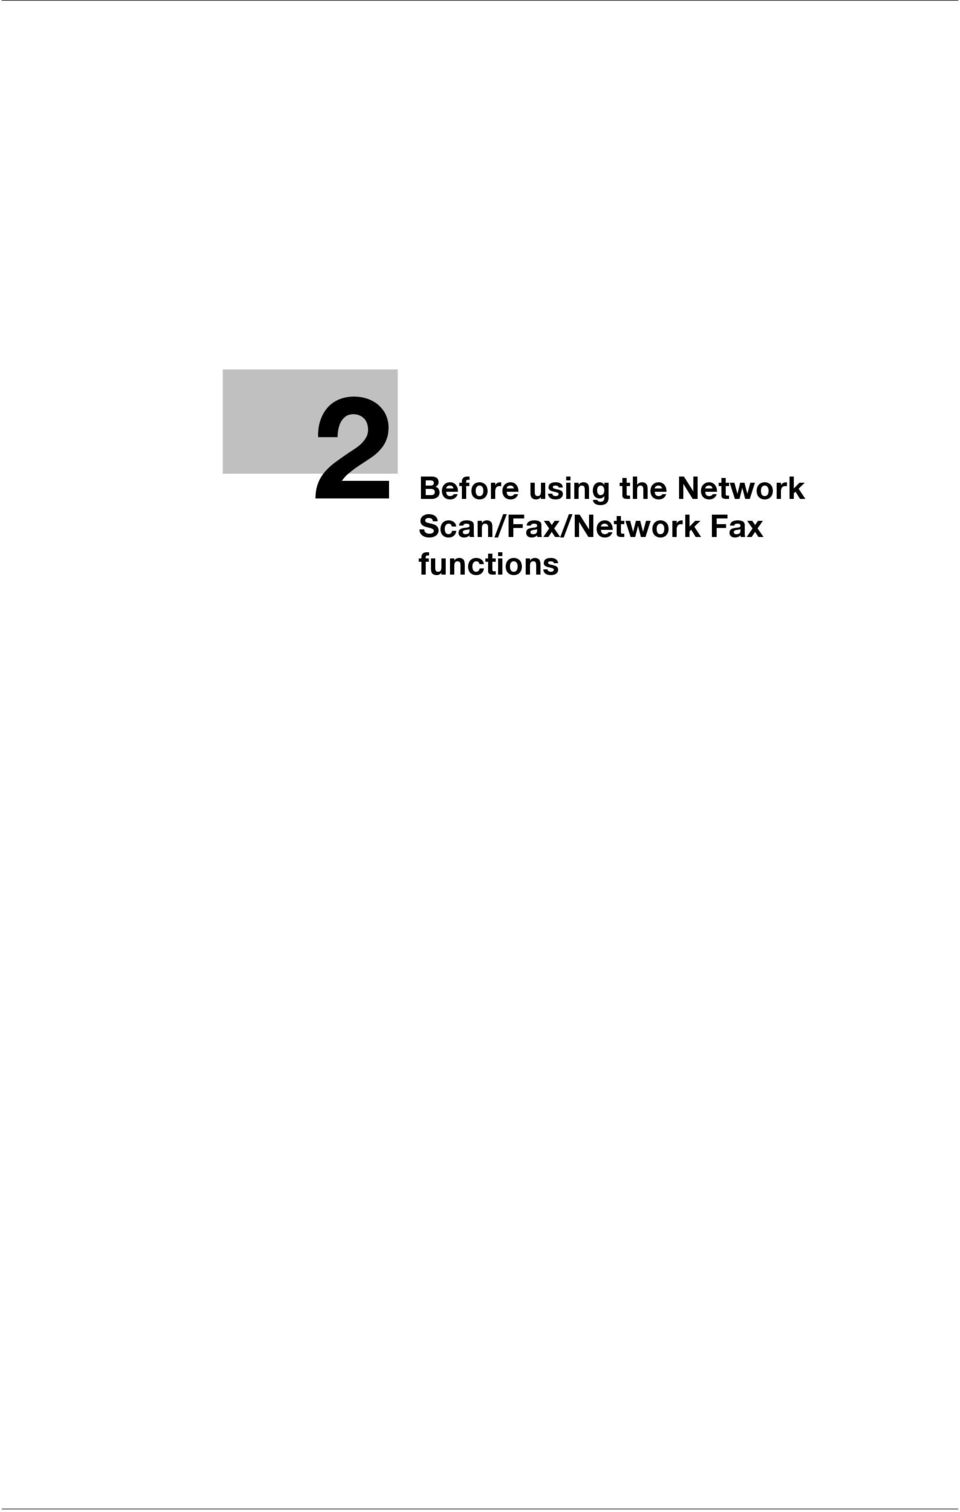 user s guide network scan fax network fax operations pdf 19 2 1 information 2 2 before using the network scan fax network fax functions this section describes necessary information you should be aware of before